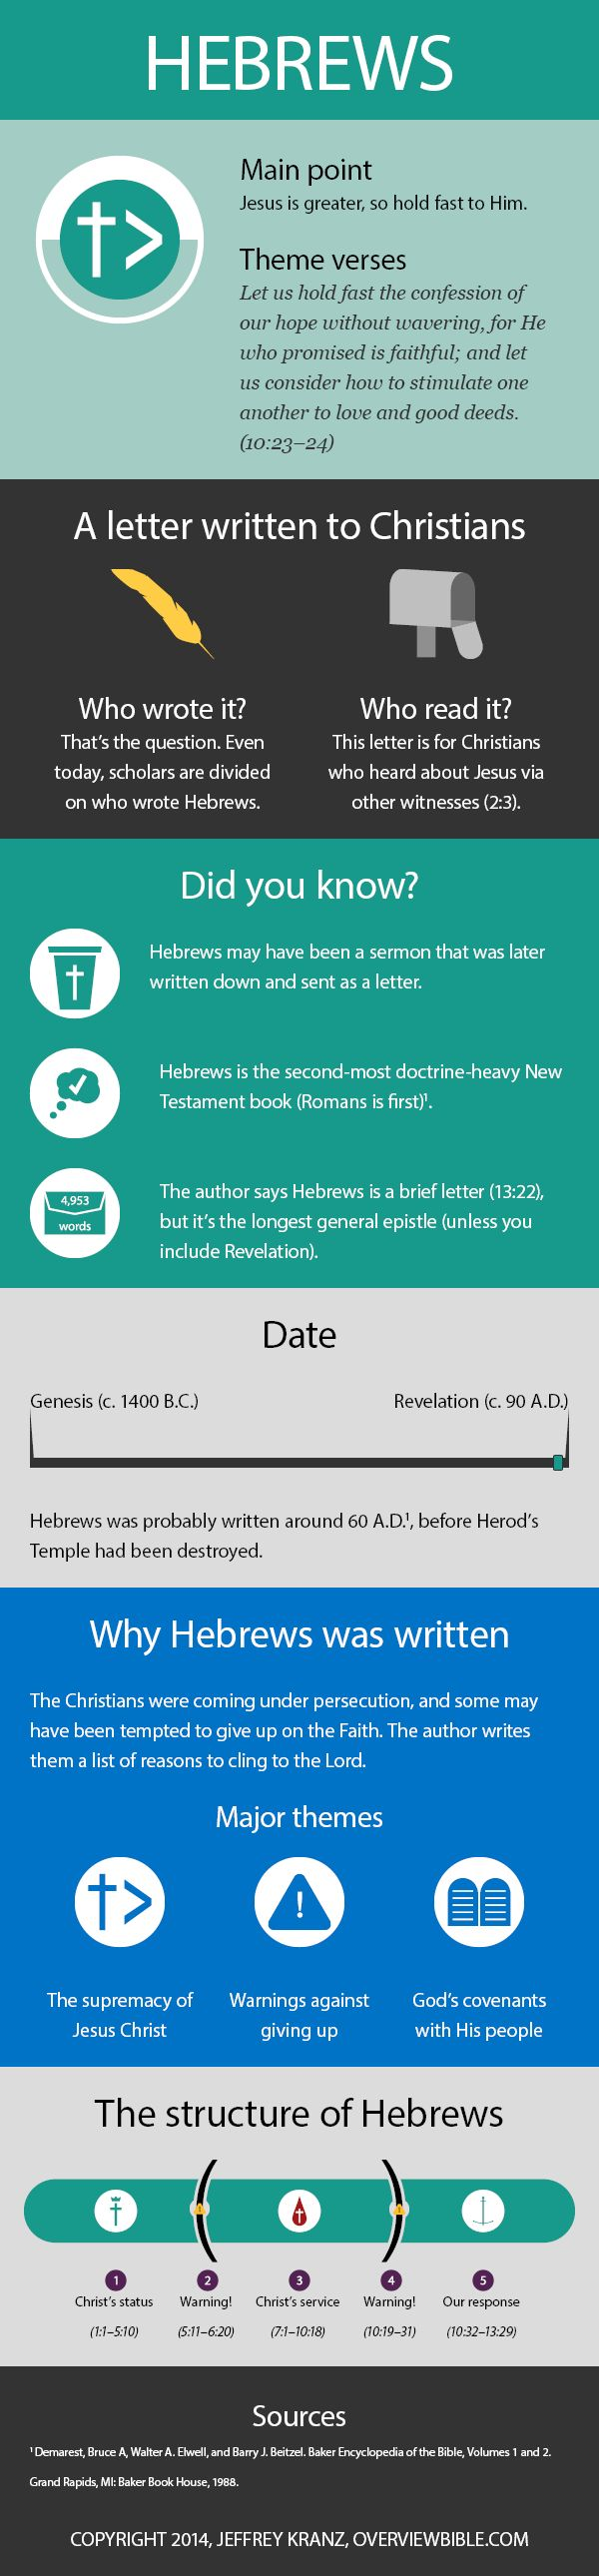 Did you know that the book of Hebrews is the second-most doctrine-heavy book of the New Testament? Or that it may have been written as a sermon first and then sent around to churches? Or what about why Hebrews was written in the first place? Well, now there's an infographic on the book of Hebrews […]